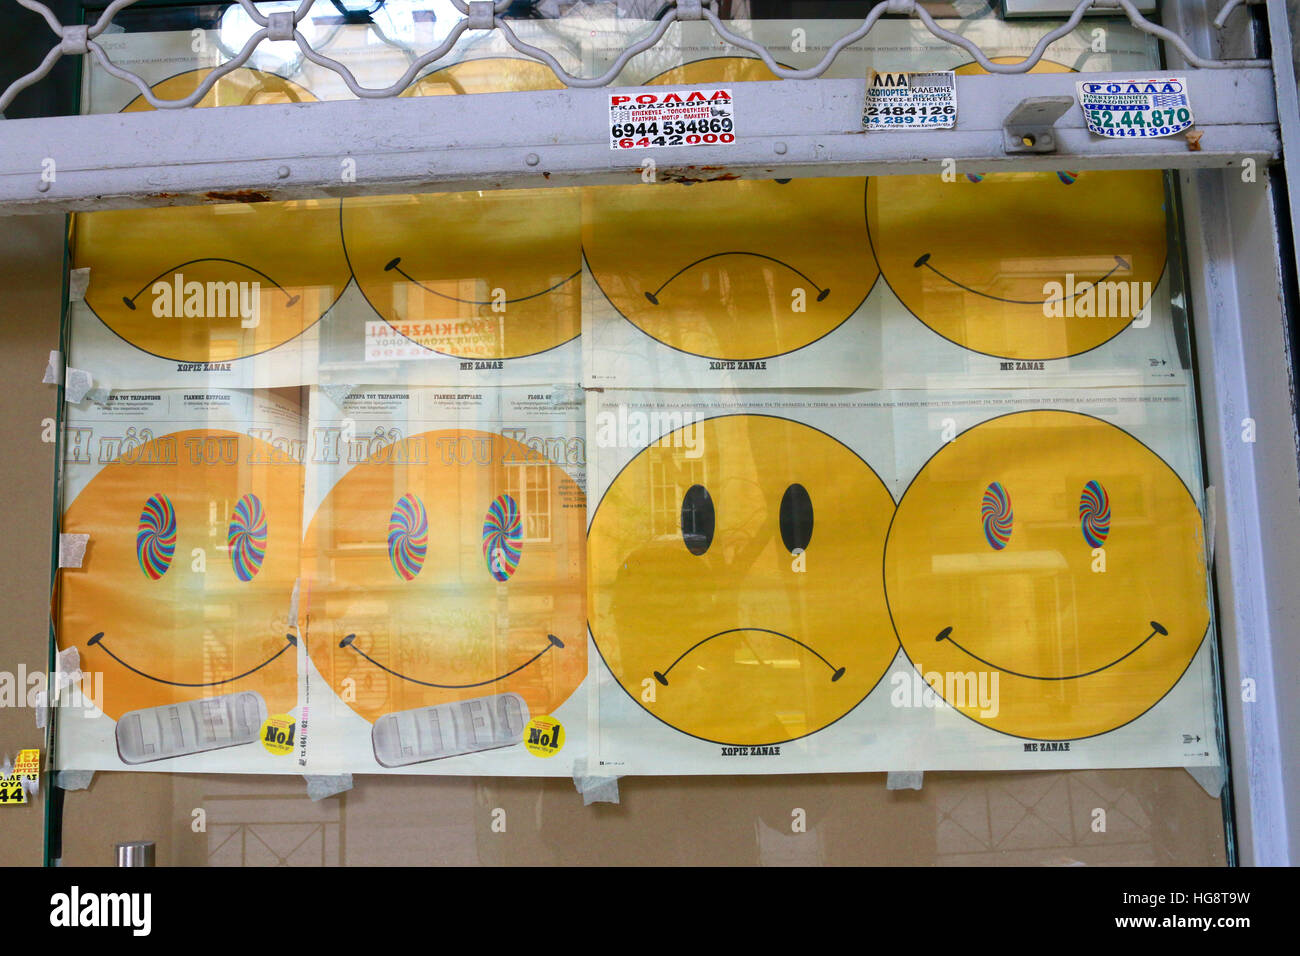 Smileys, Athen, Griechenland. - Stock Image